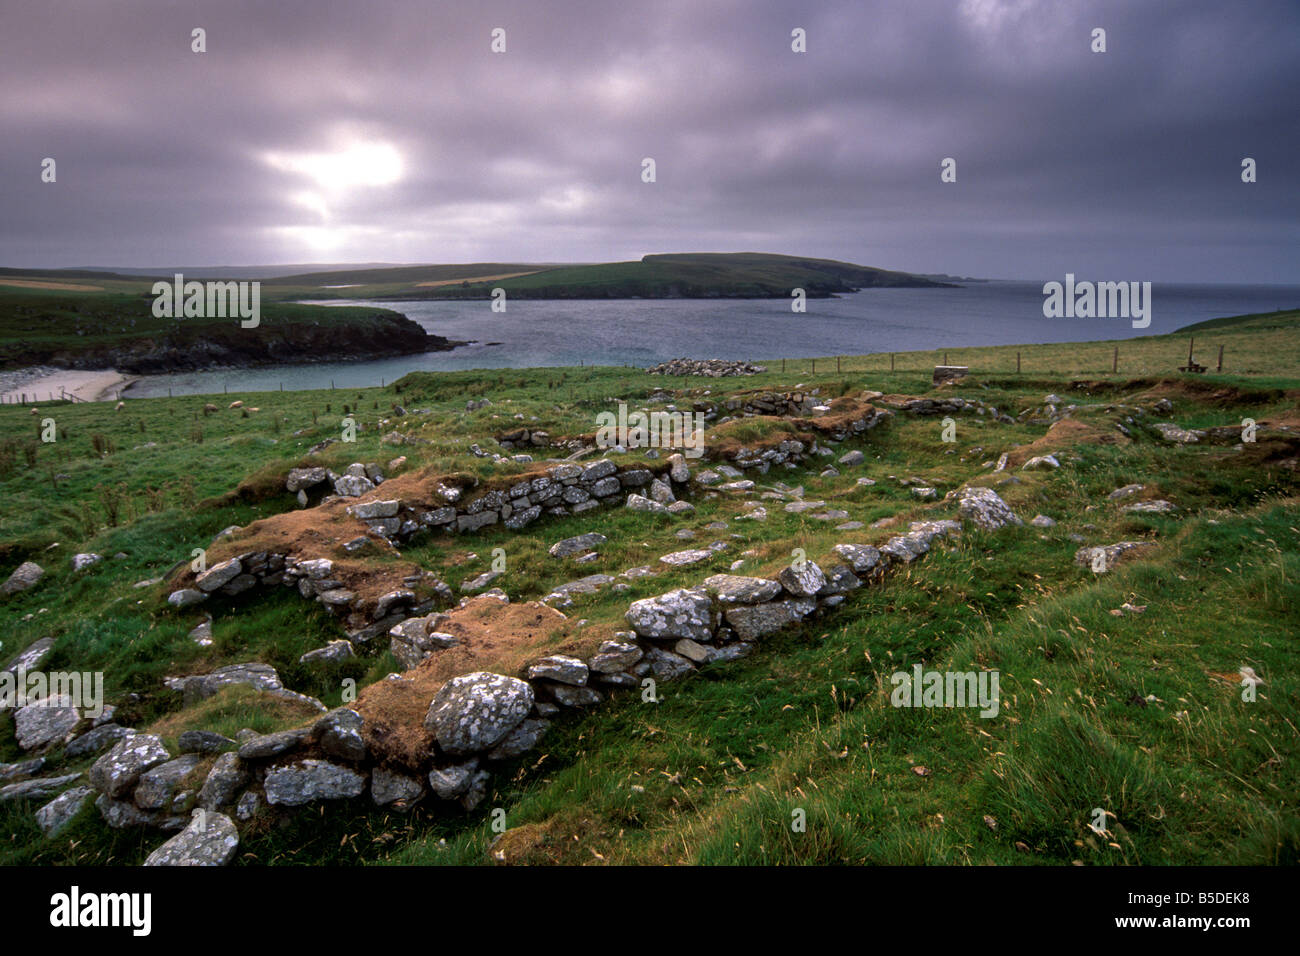 Remains of Viking longhouse at Underhoull, Unst, Shetland Islands, Scotland, Euorpe - Stock Image